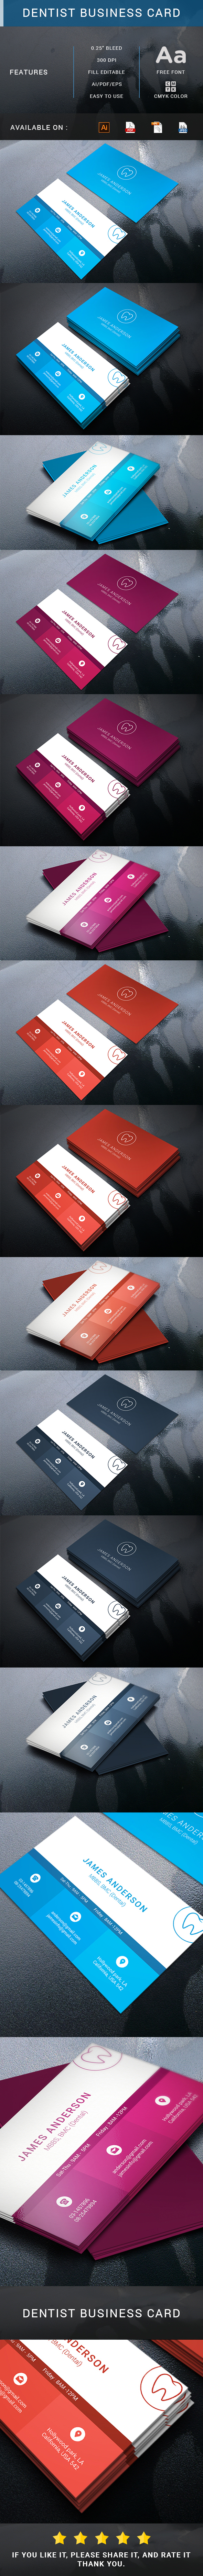 "check out my behance project ""dentist business card"" s"